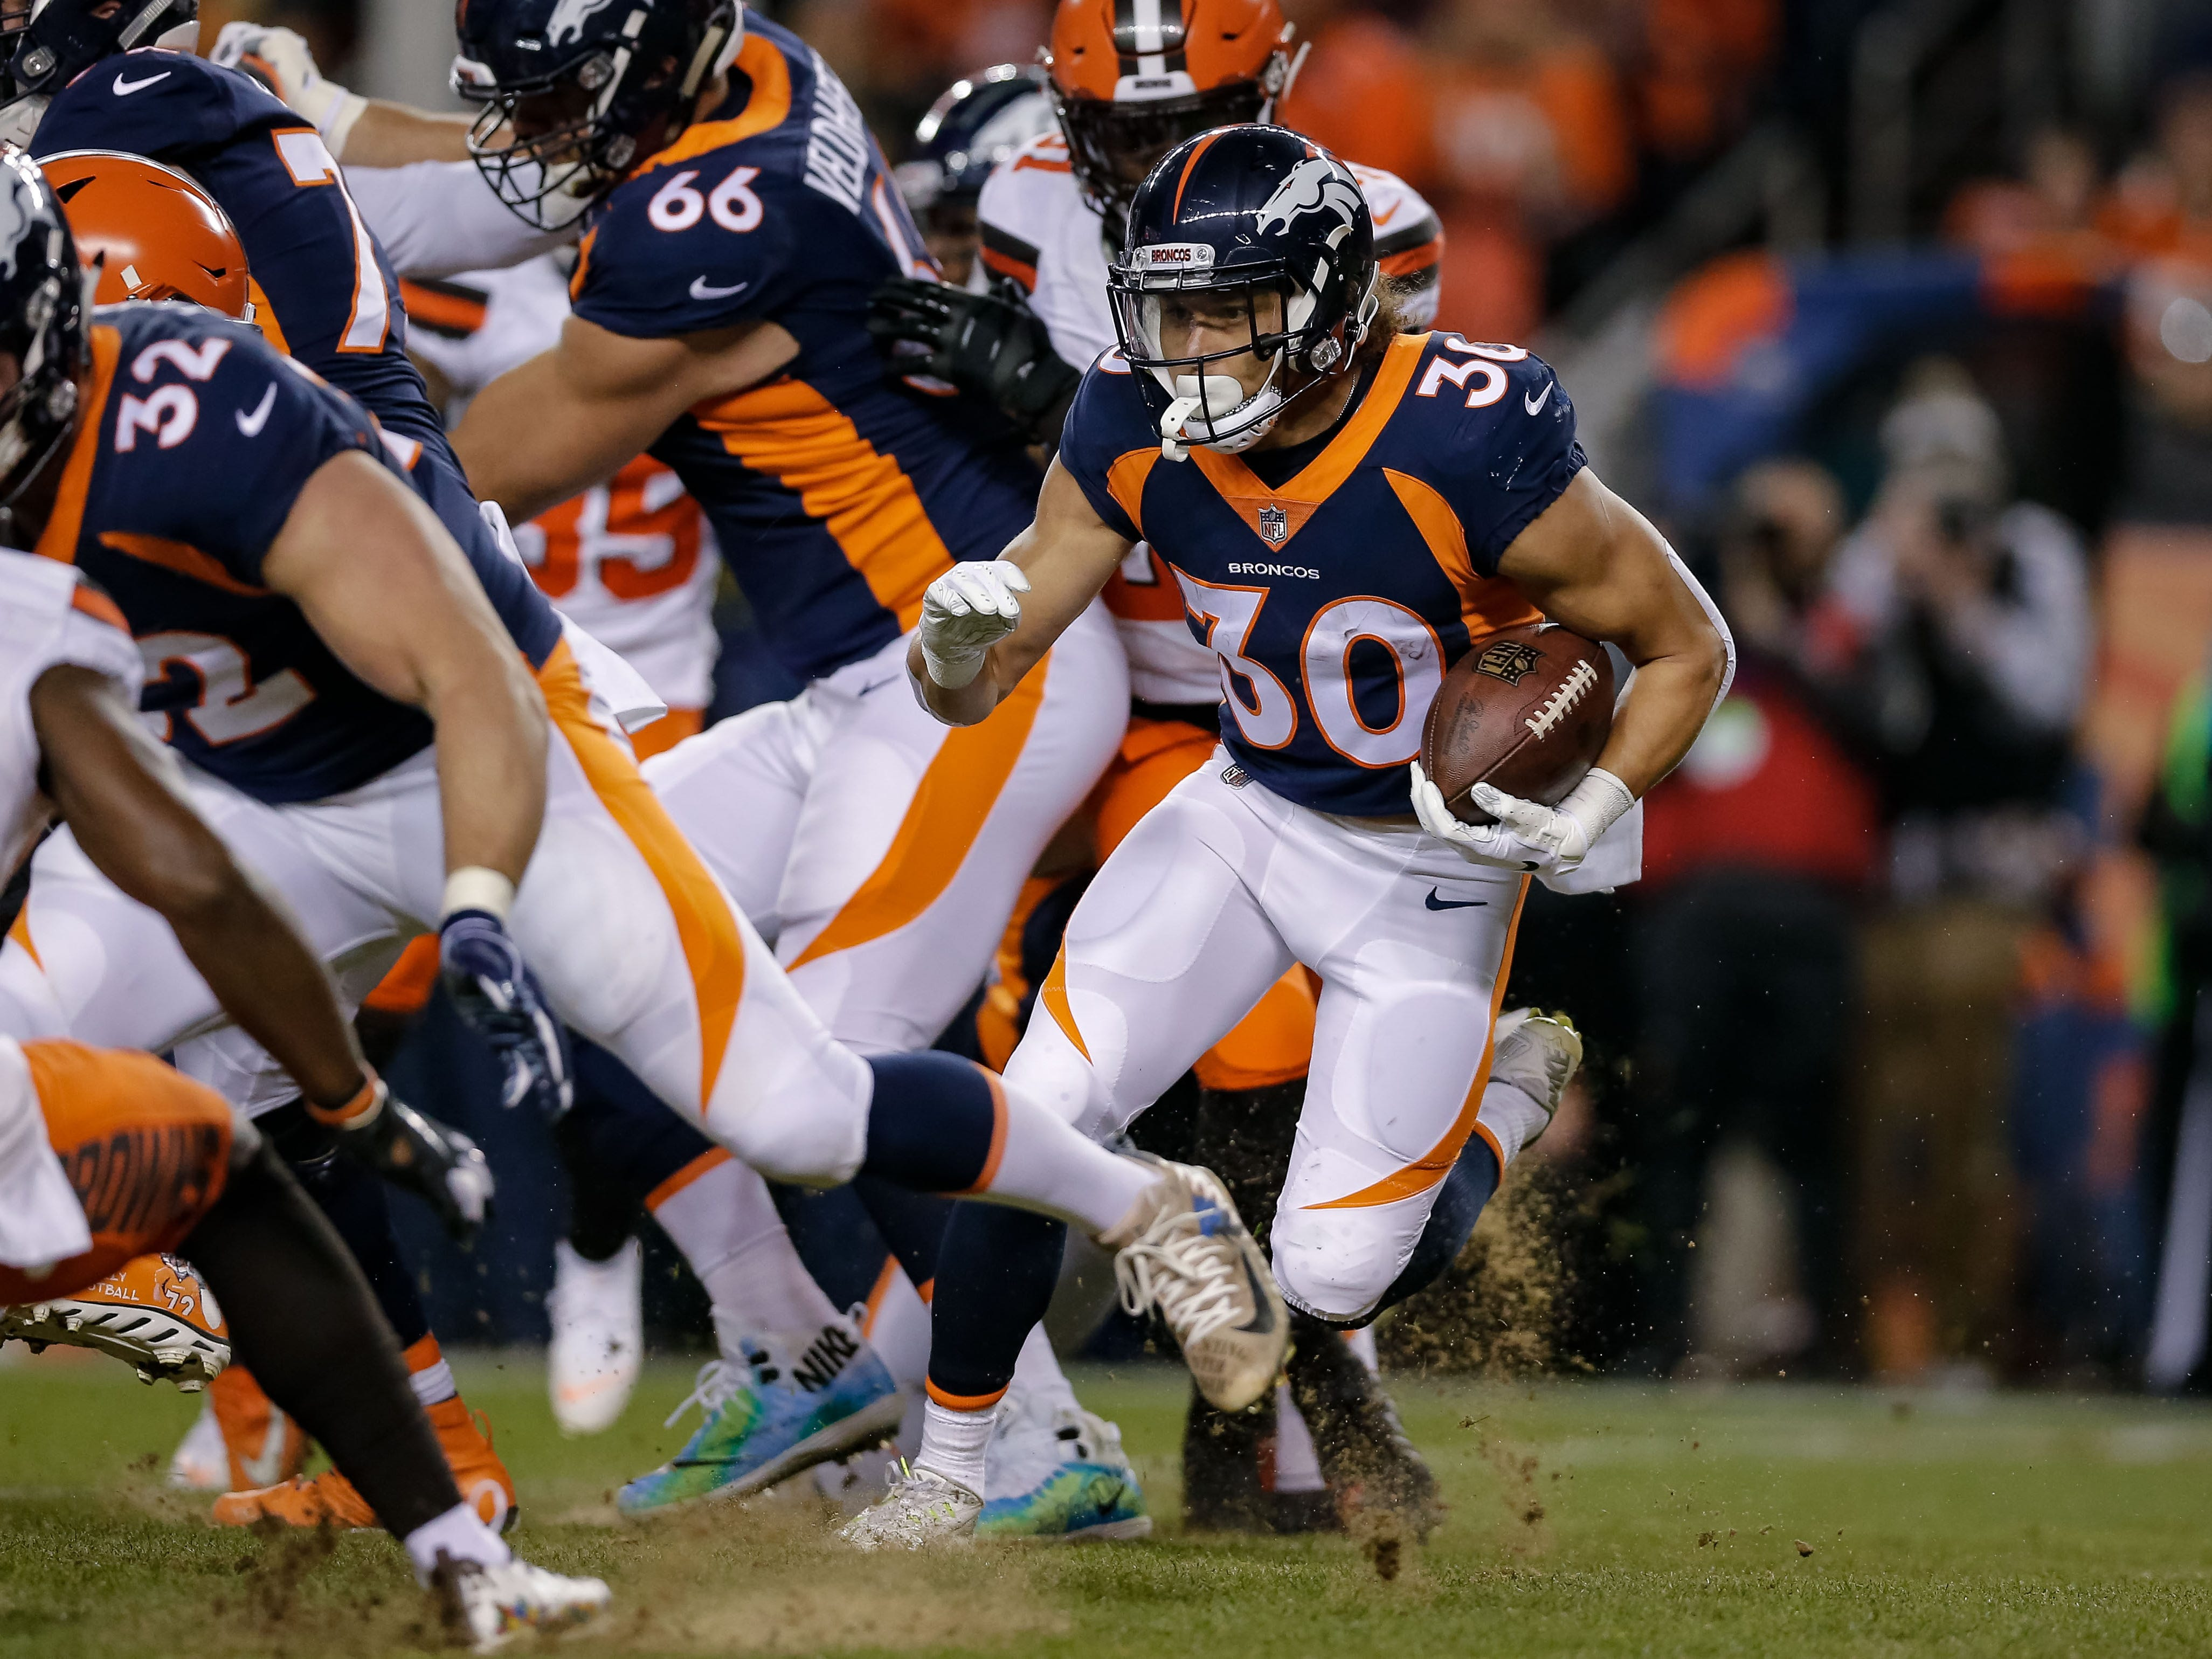 Denver Broncos running back Phillip Lindsay (30) runs the ball in the first quarter against the Cleveland Browns at Broncos Stadium at Mile High.